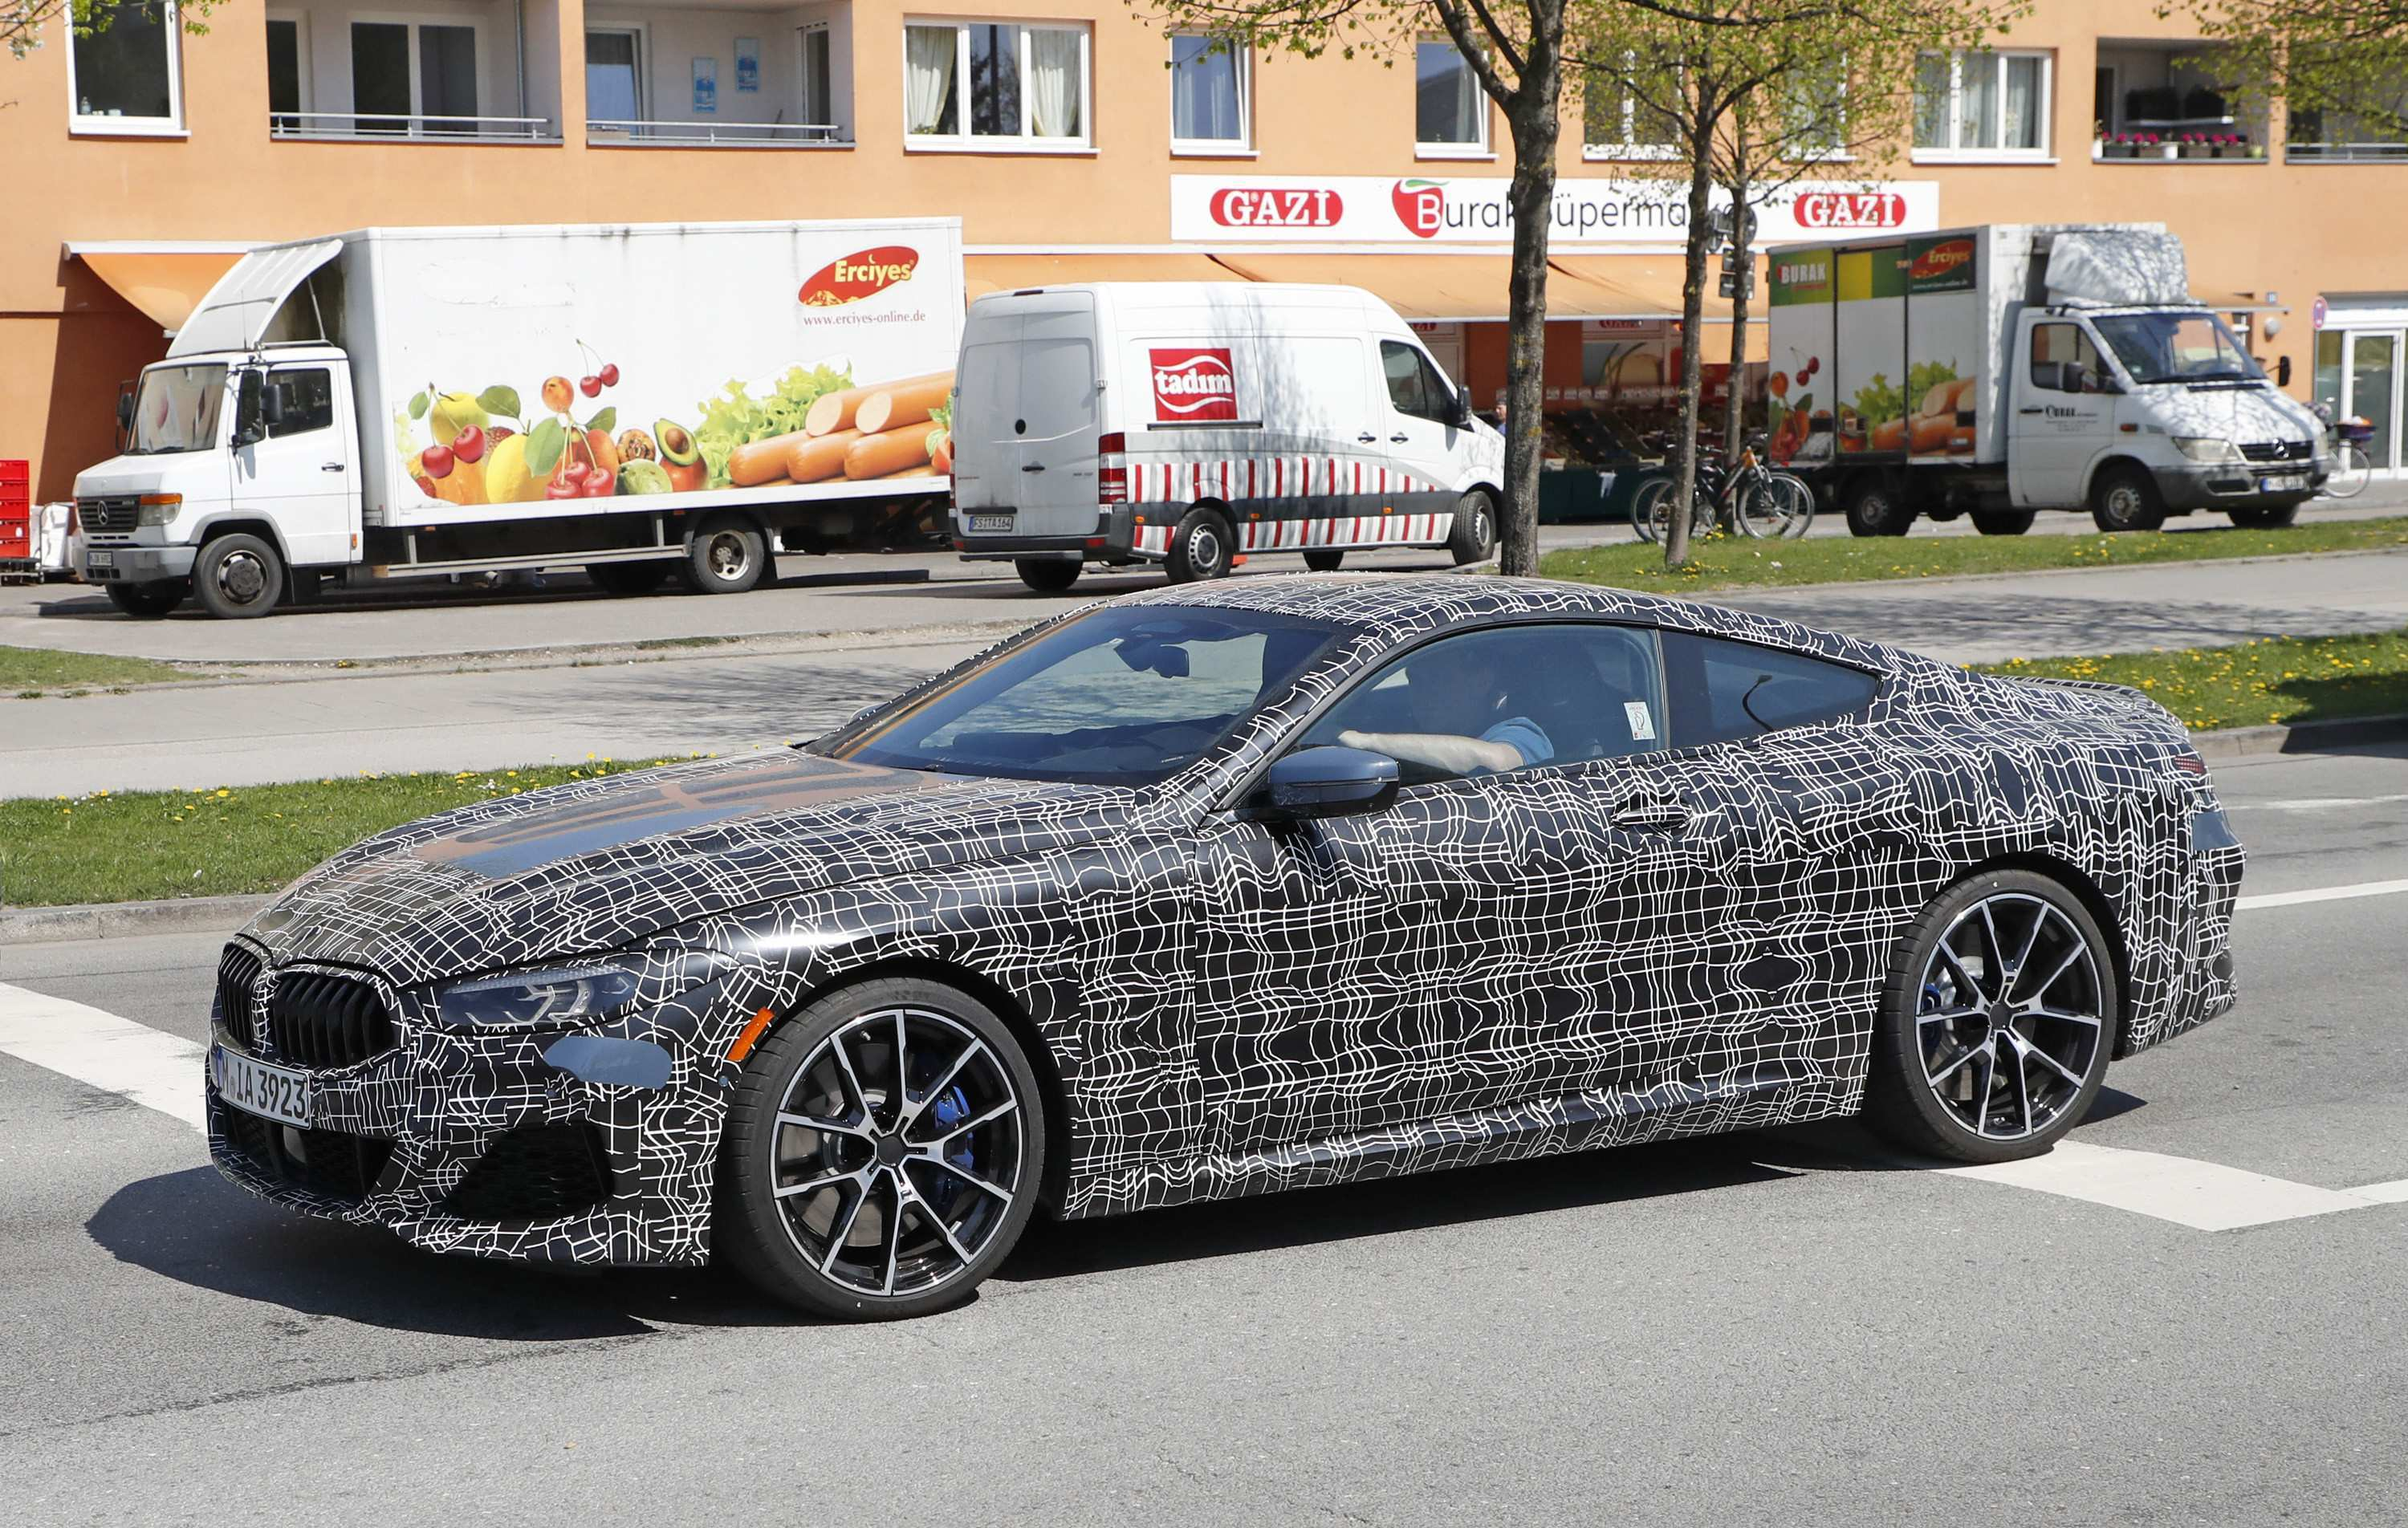 69 A 2019 Chevy El Camino Ss Images